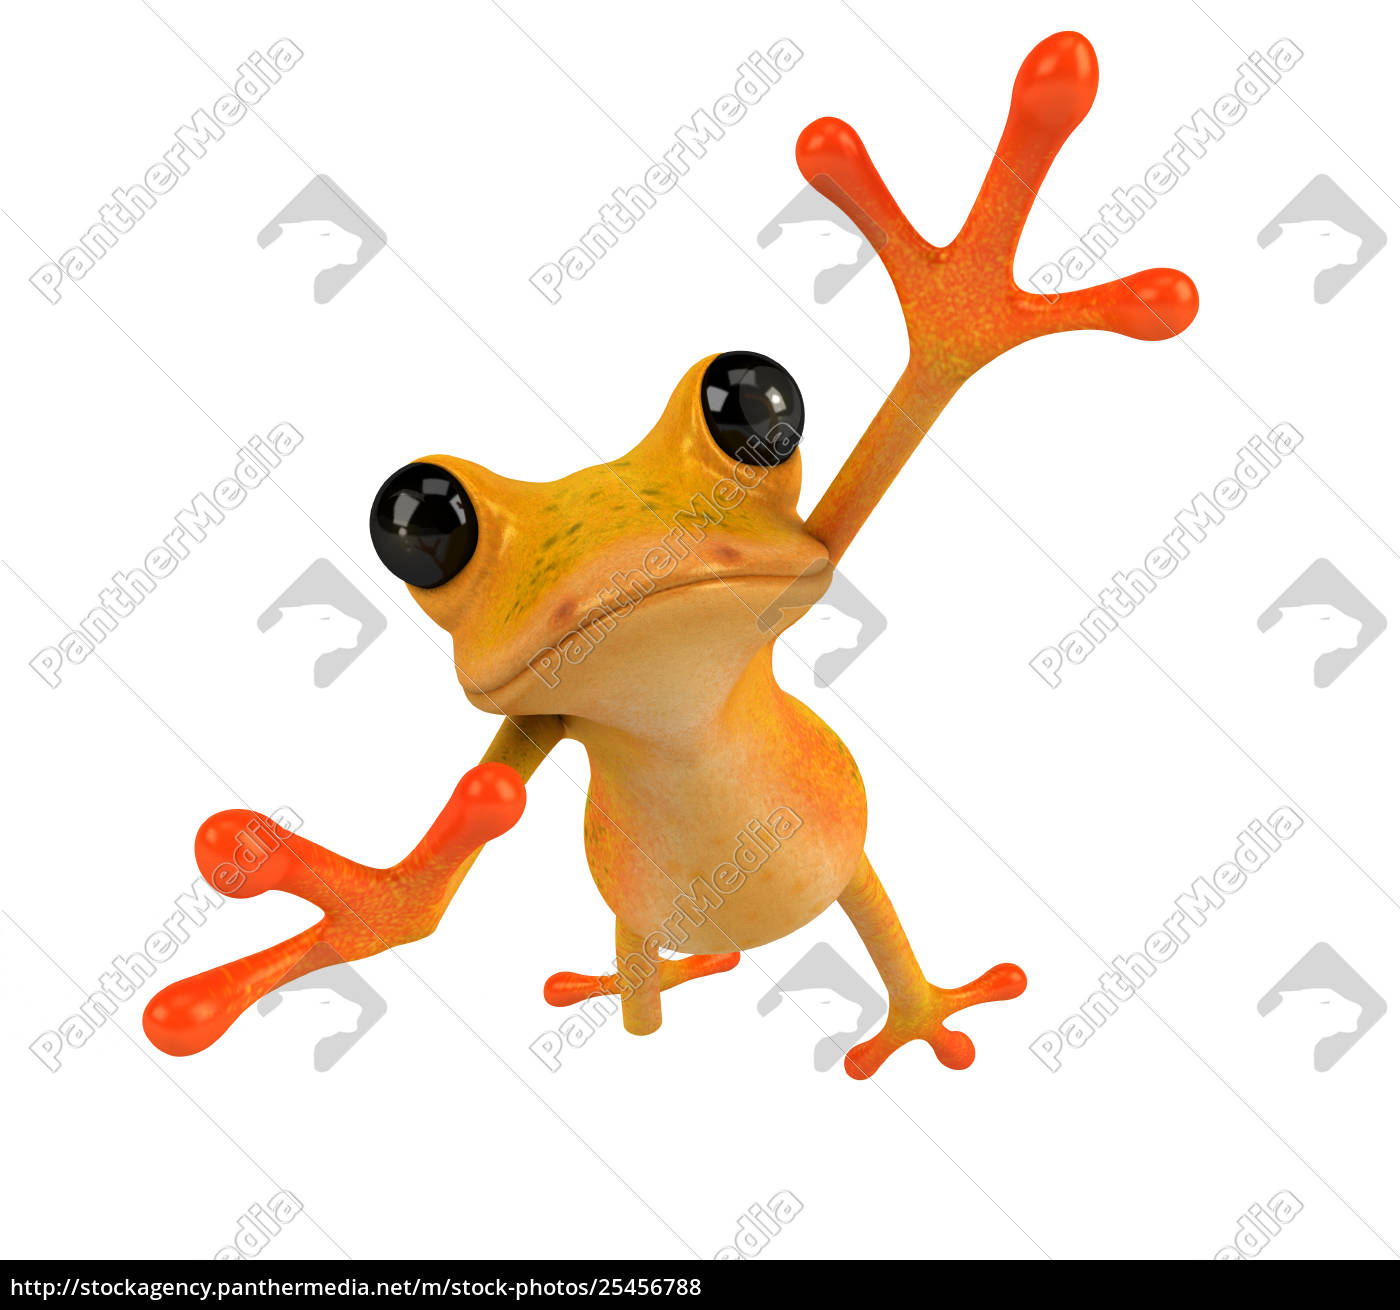 fun, frog, -, 3d, illustration - 25456788